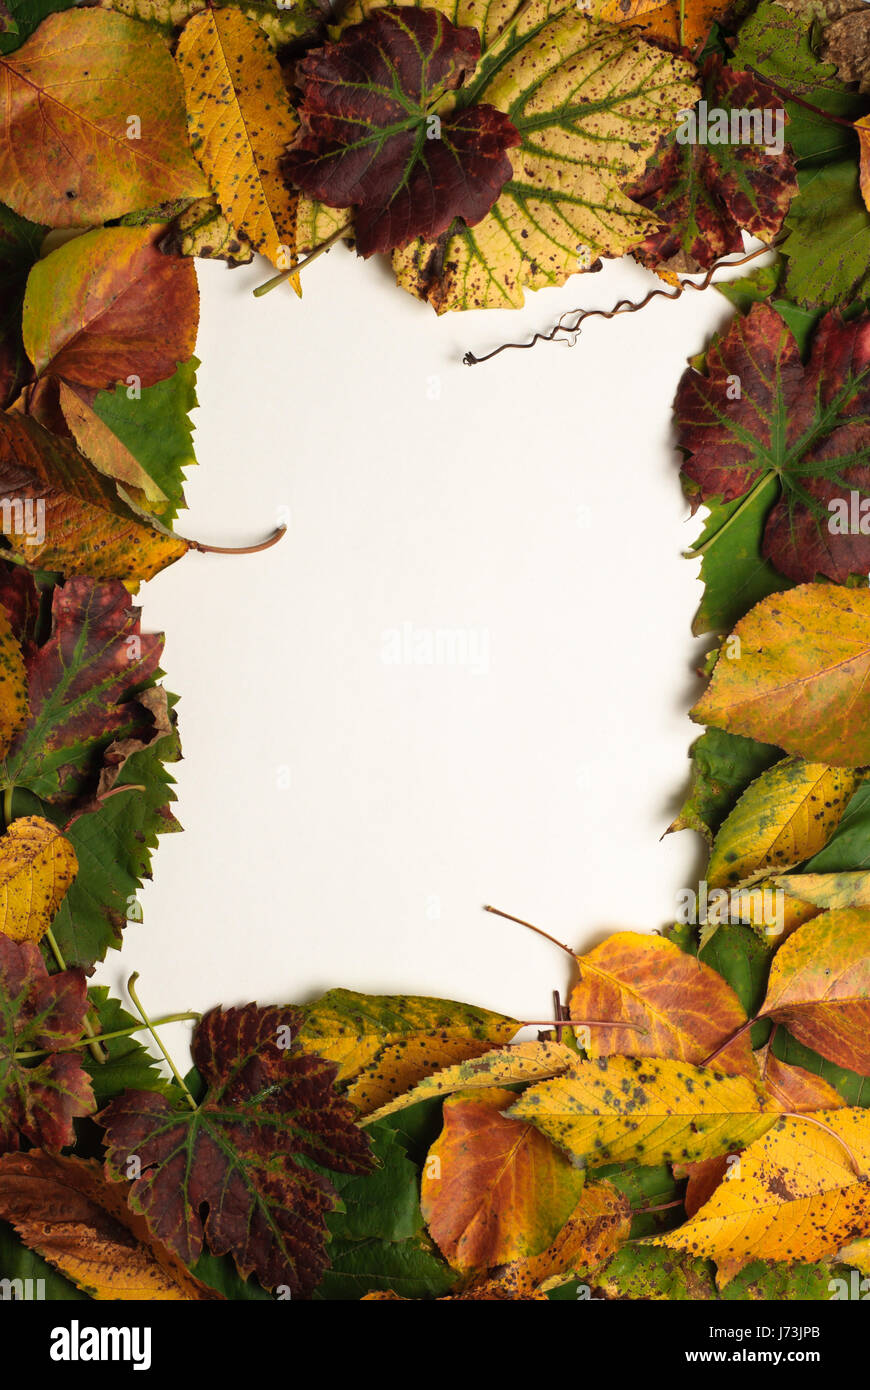 Data Leaf Stockfotos & Data Leaf Bilder - Alamy